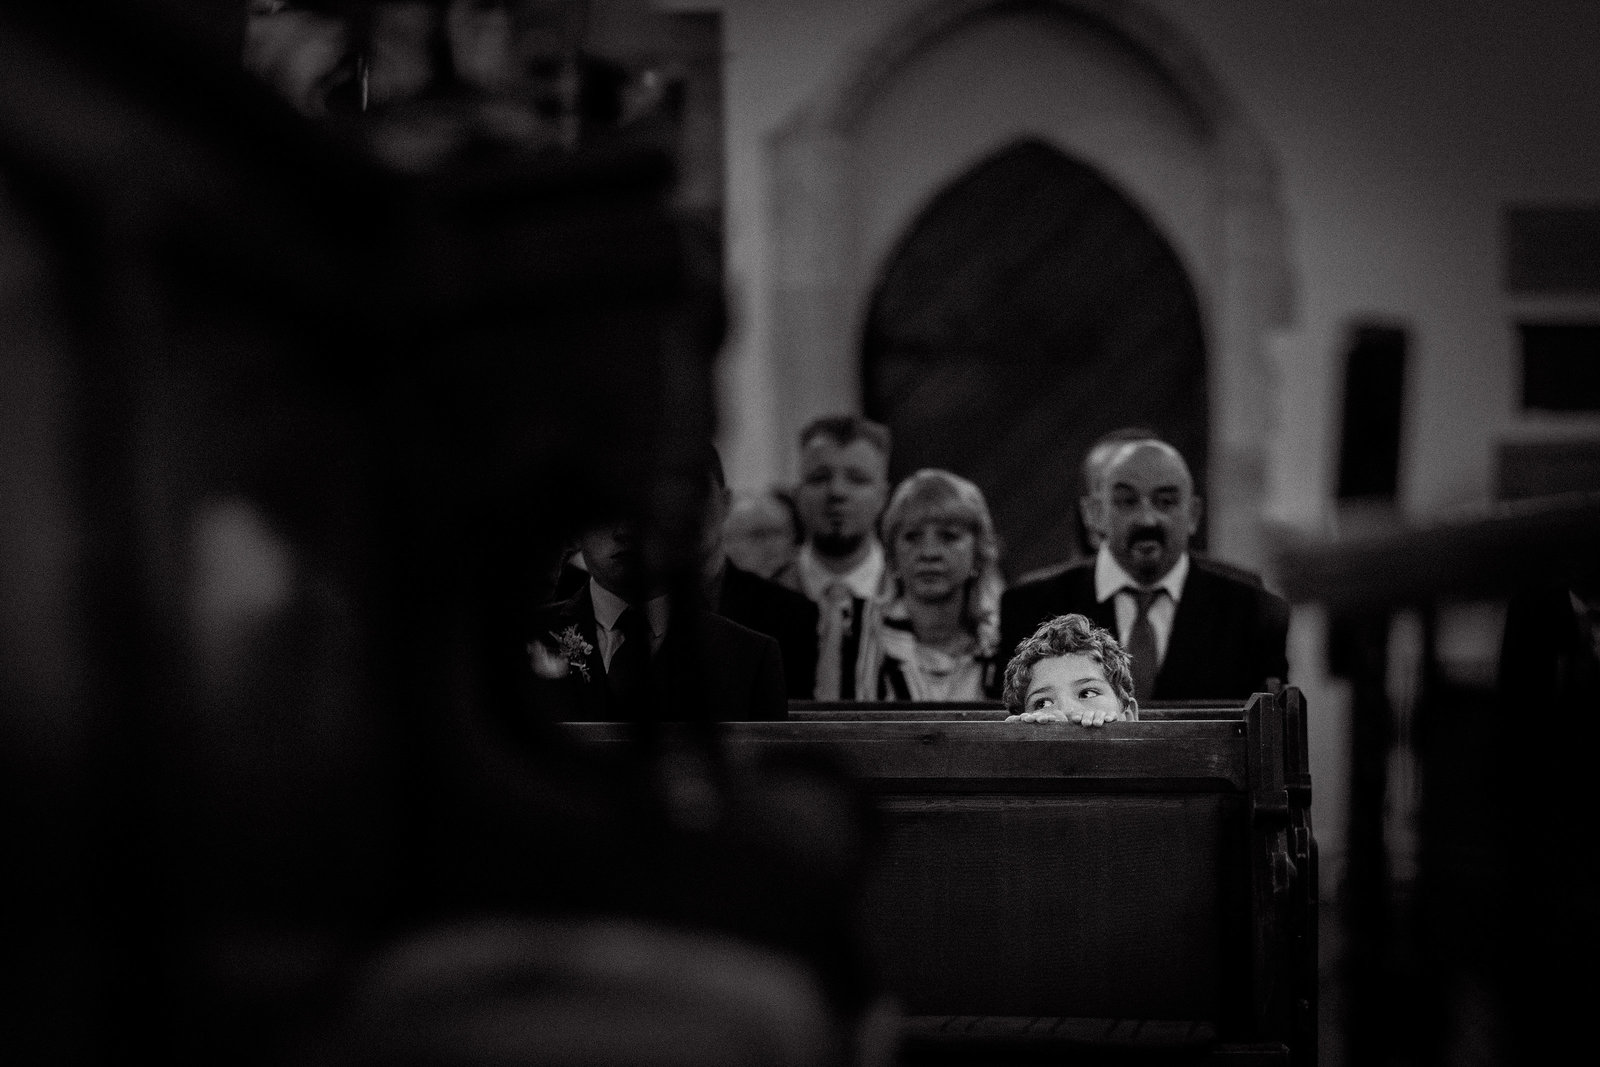 Page peeks over the pew in the church in this beautifully captured black and white documentary photograph captured by Adorlee in natural light